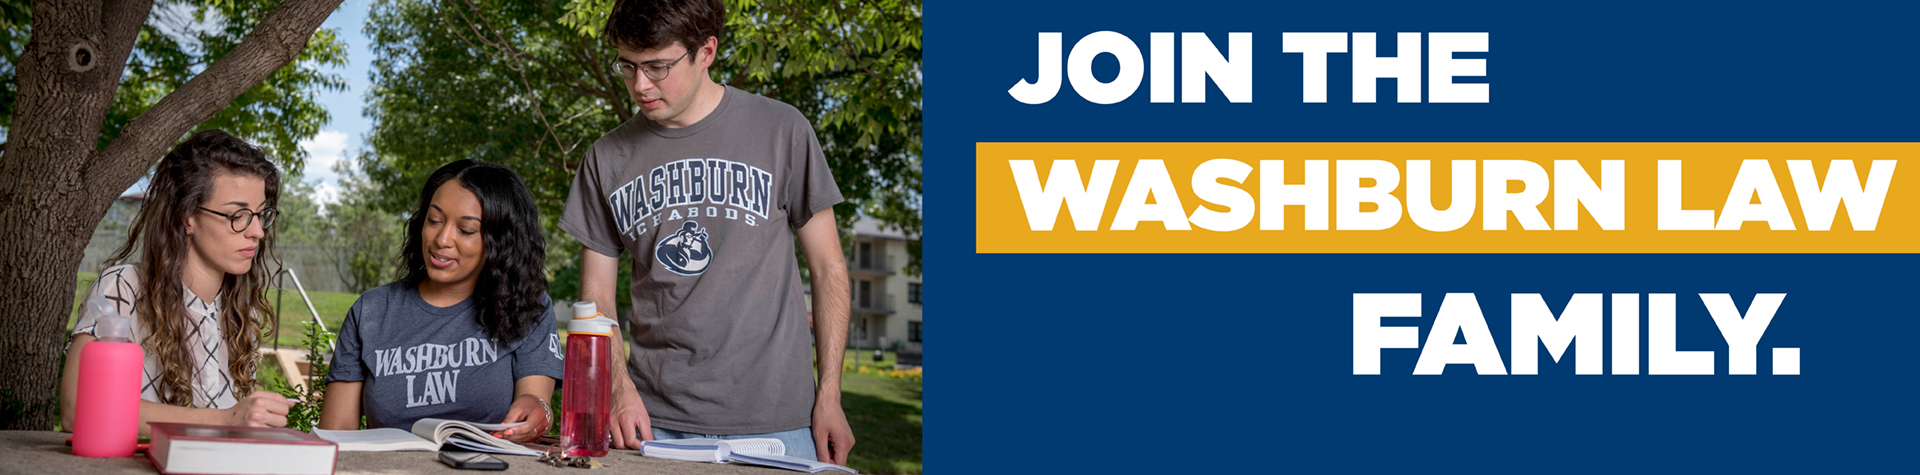 Join the Washburn Law family.